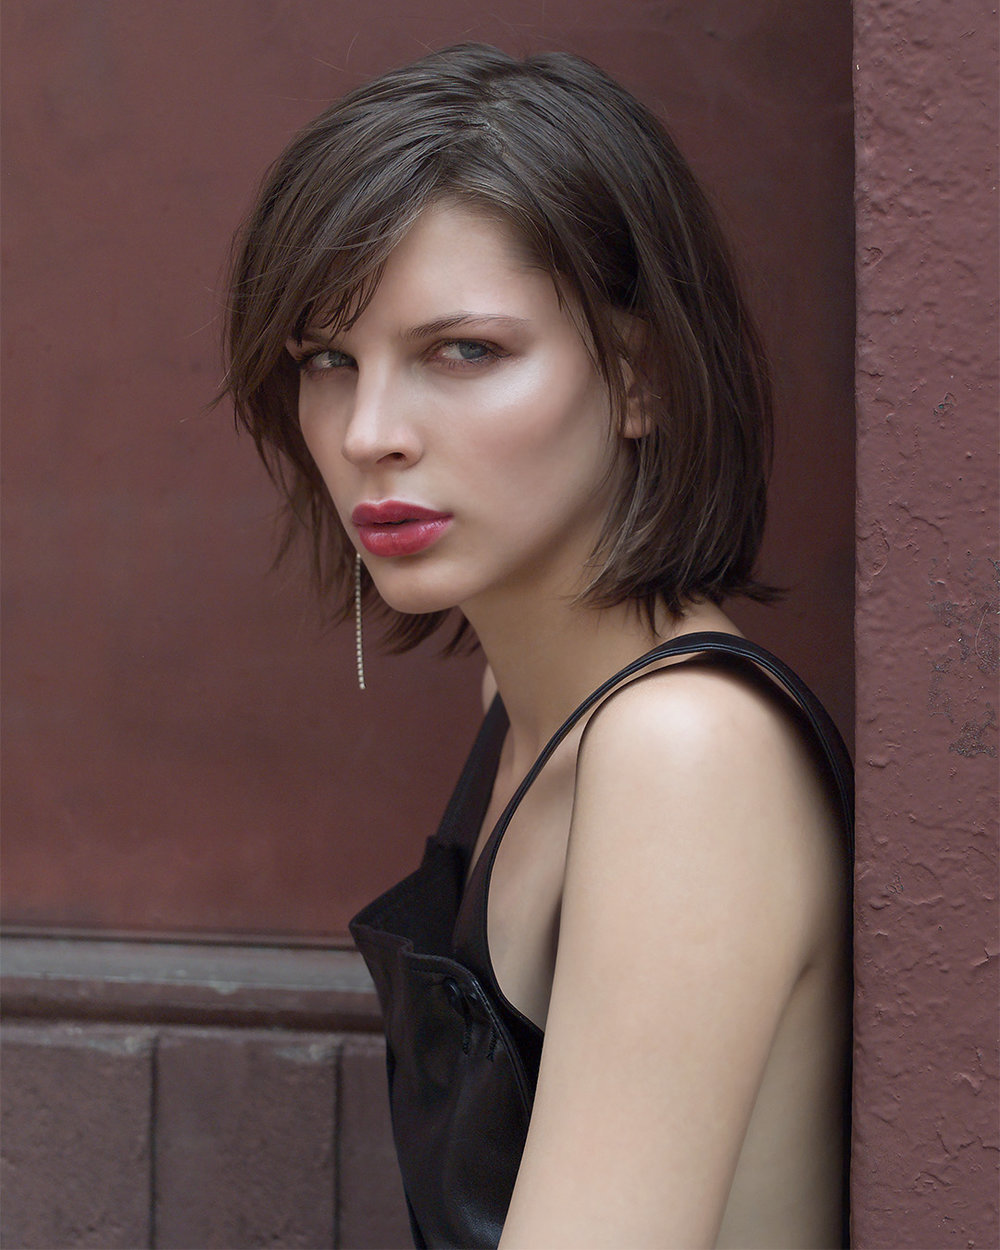 Model Agota Varga photographed by Patrik Andersson downtown NYC street style